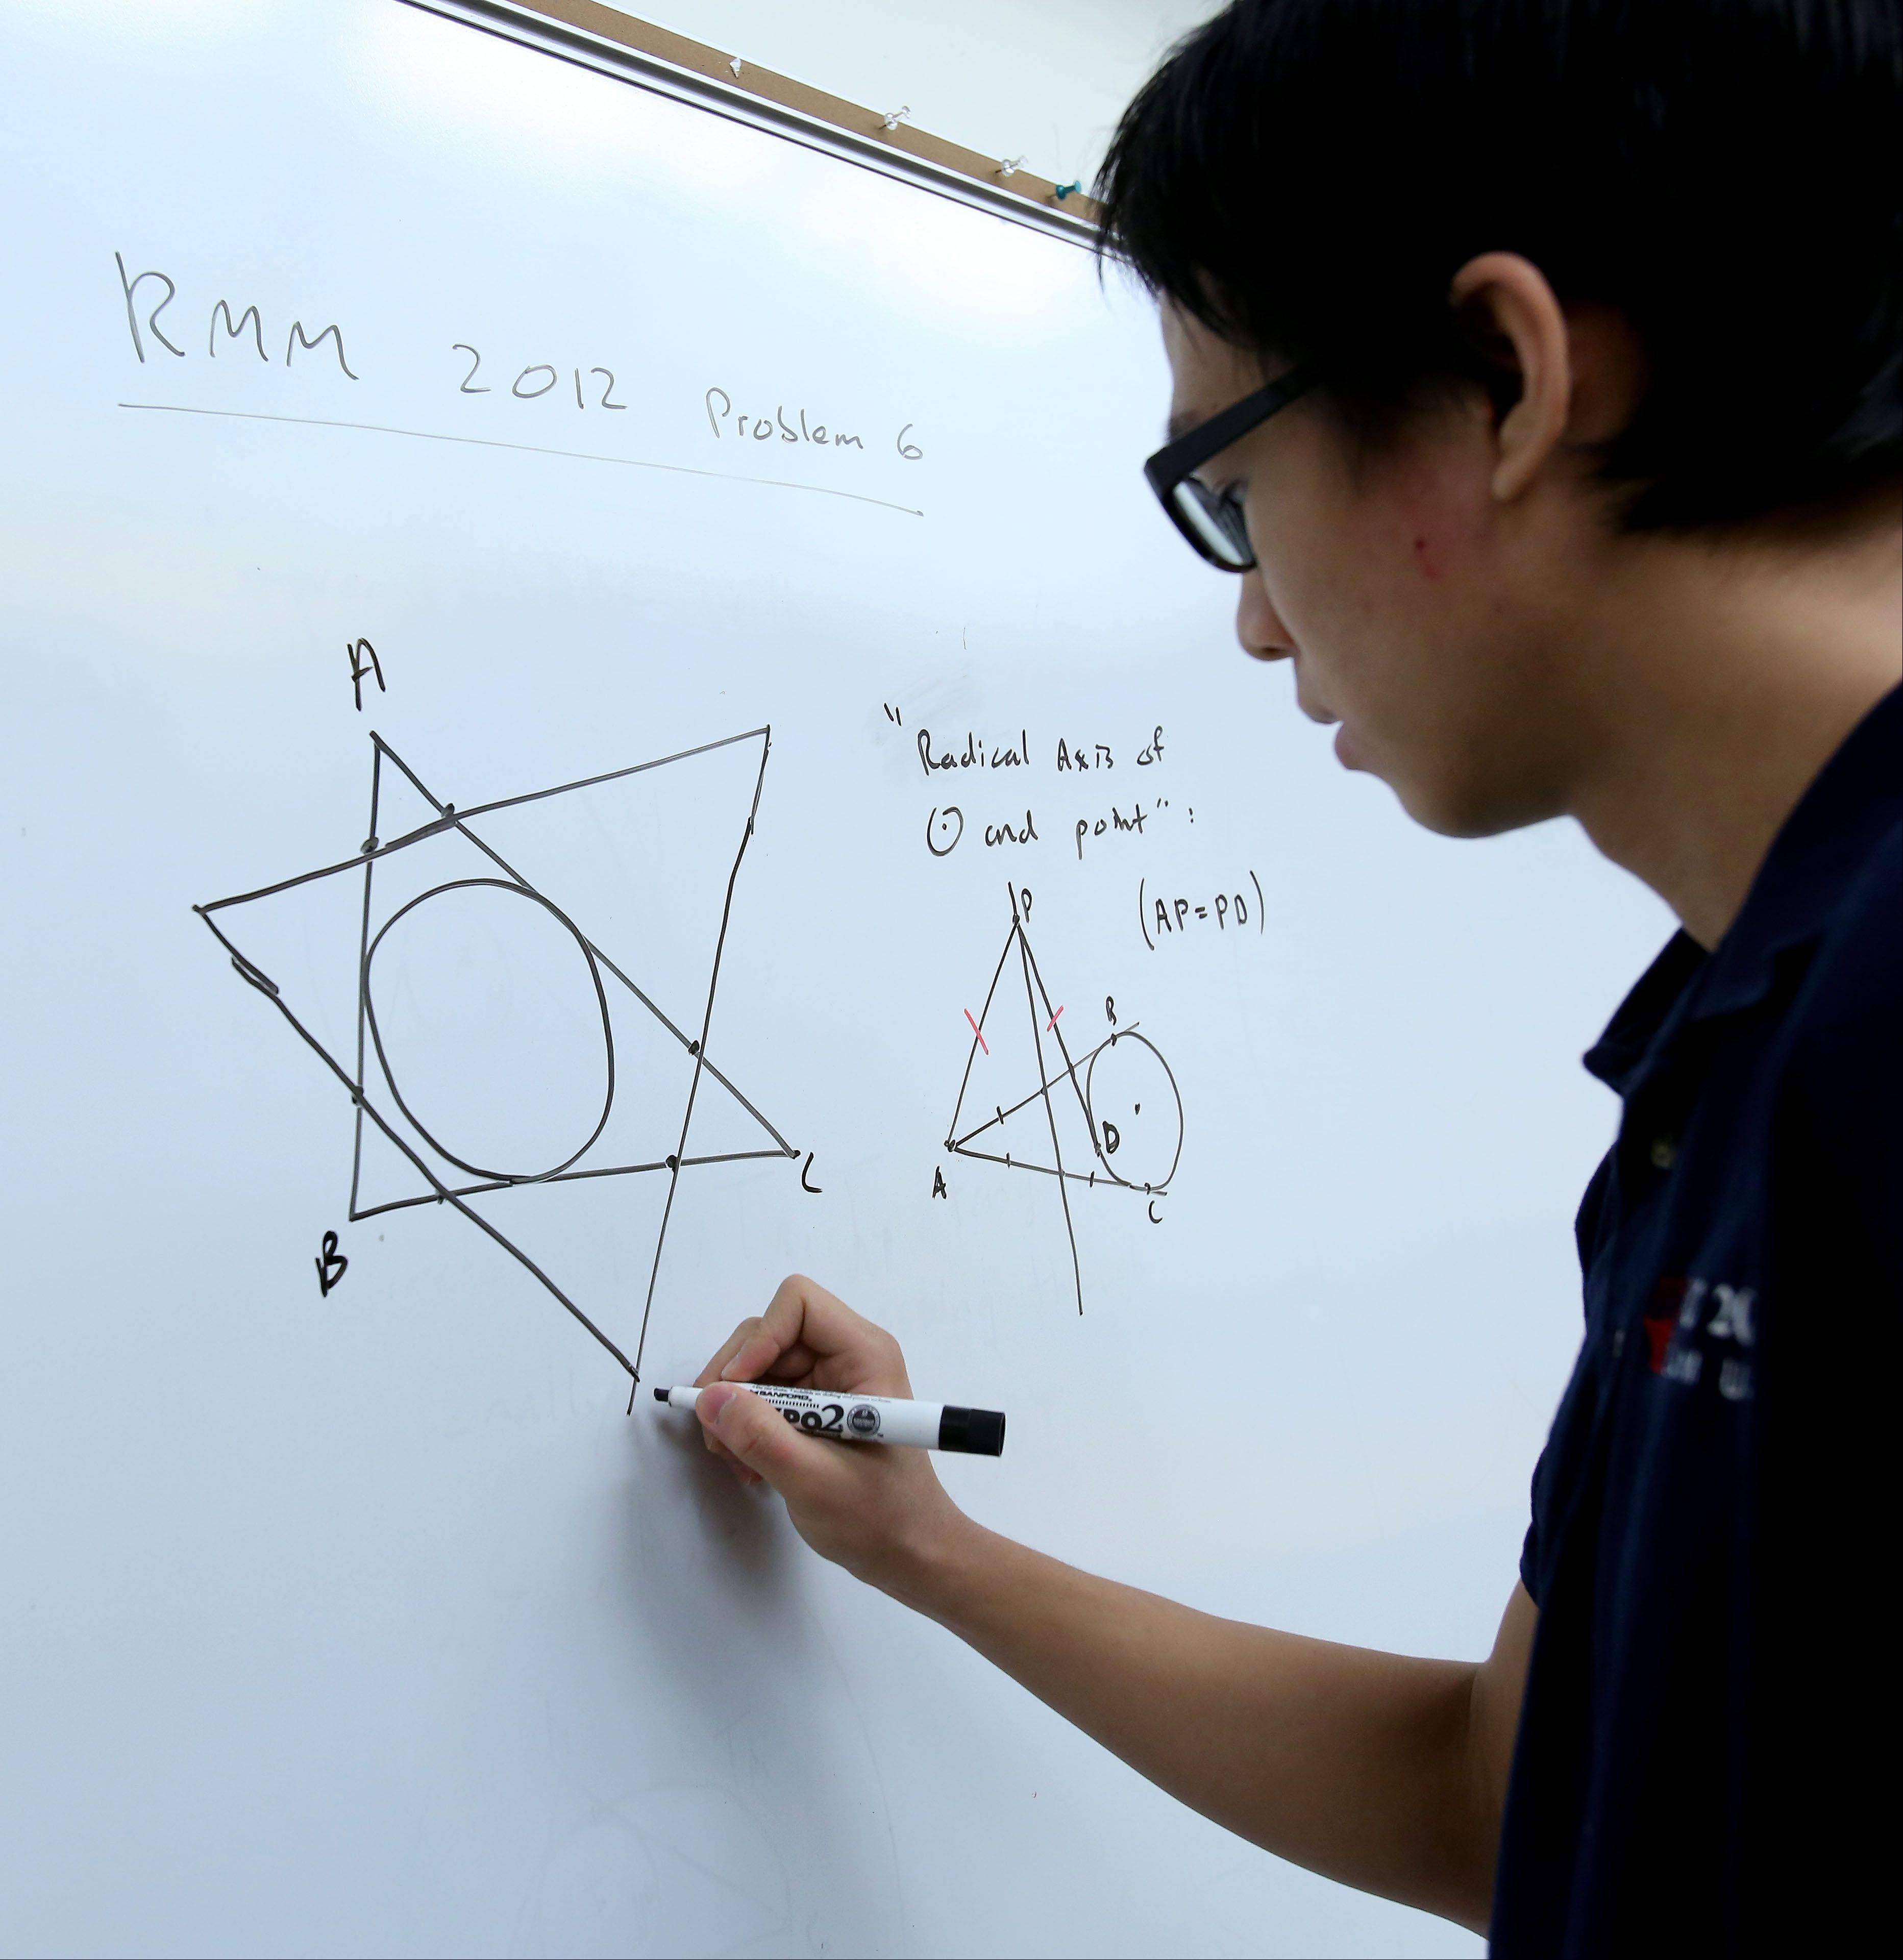 Math is all about creativity, says James Tao, a senior at the Illinois Mathematics and Science Academy. James, 17, of Hoffman Estates, is the most advanced geometry student that math teacher Michael Keyton has taught in 48 years, 12 of them at the prestigious Aurora school.